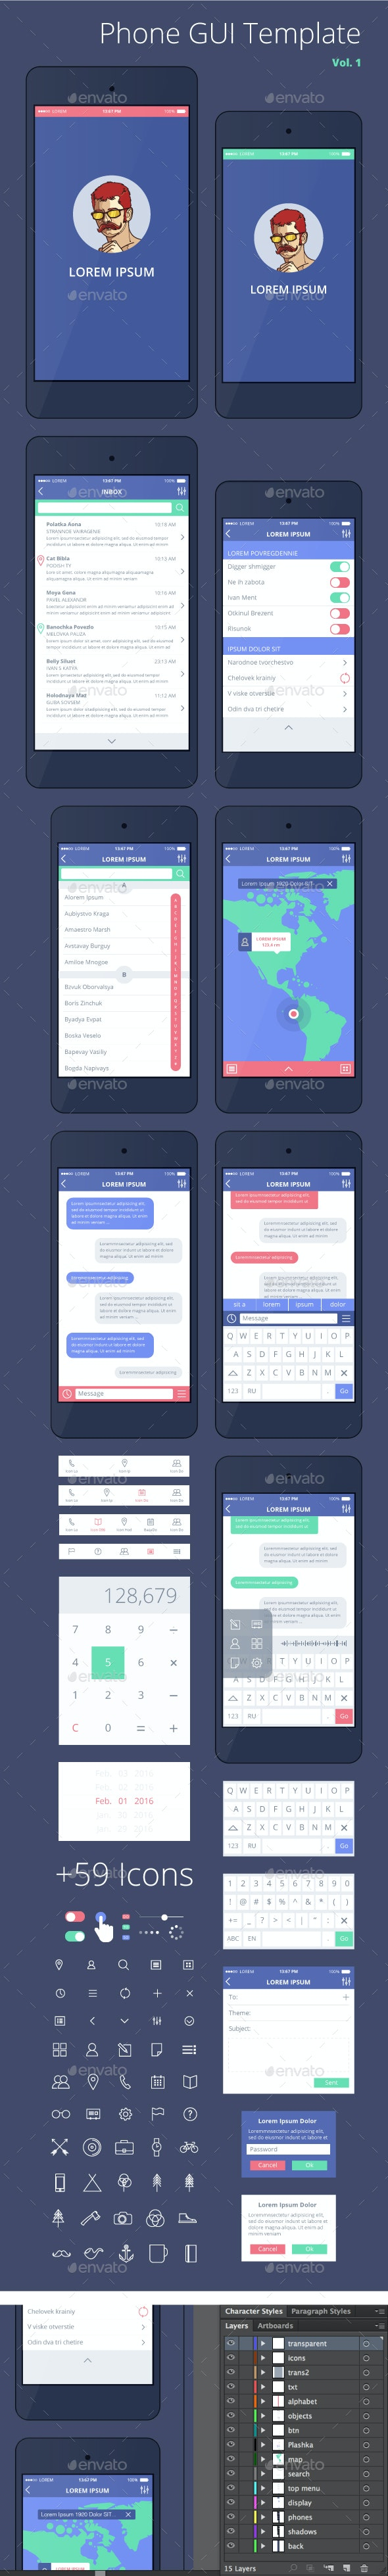 Phone GUI Template for Ai. Wireframe UI Kit. - User Interfaces Web Elements